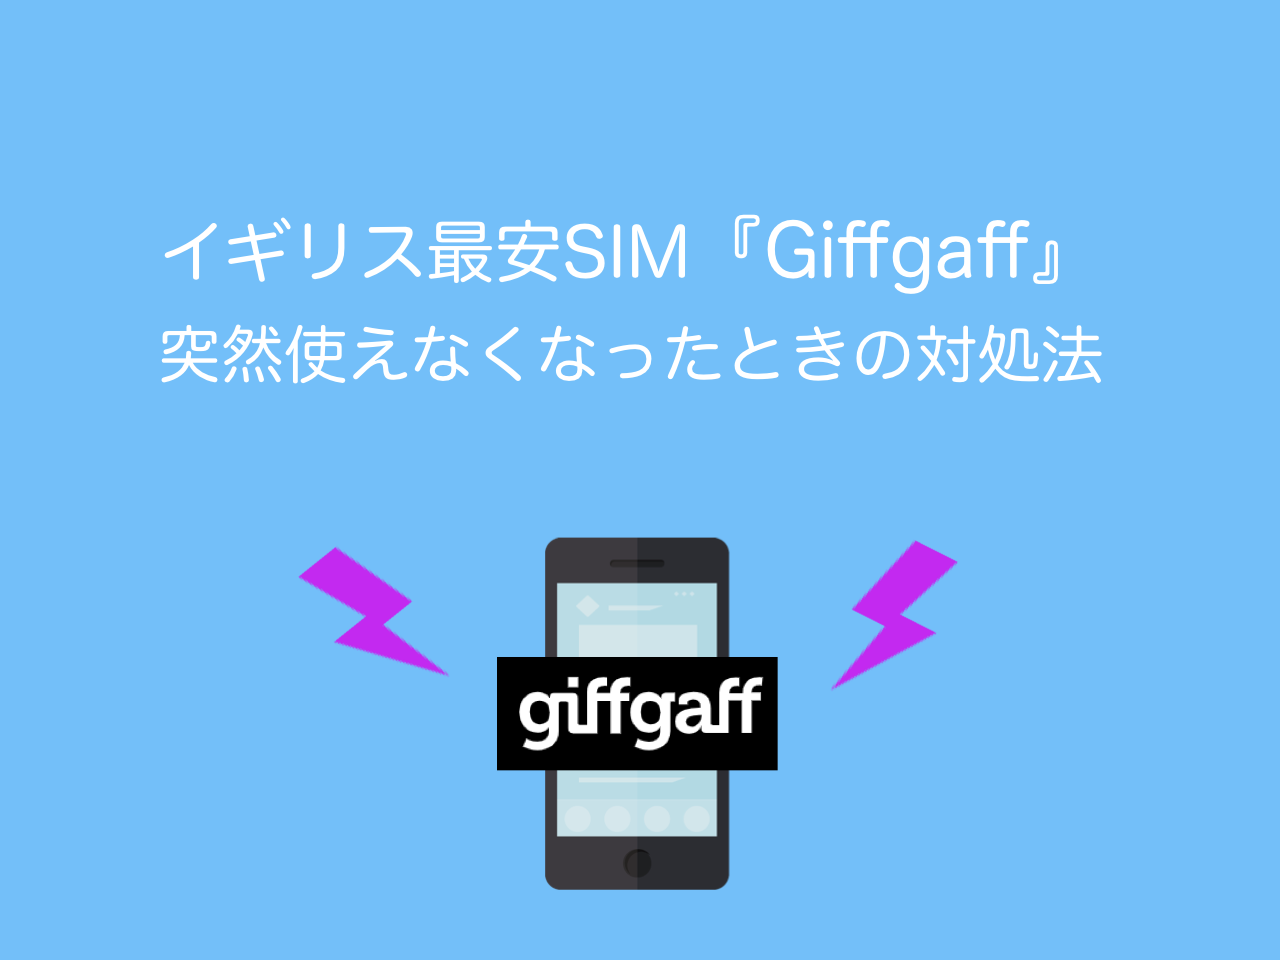 minimal traveler, eyecatch, giffgaff-disconnect